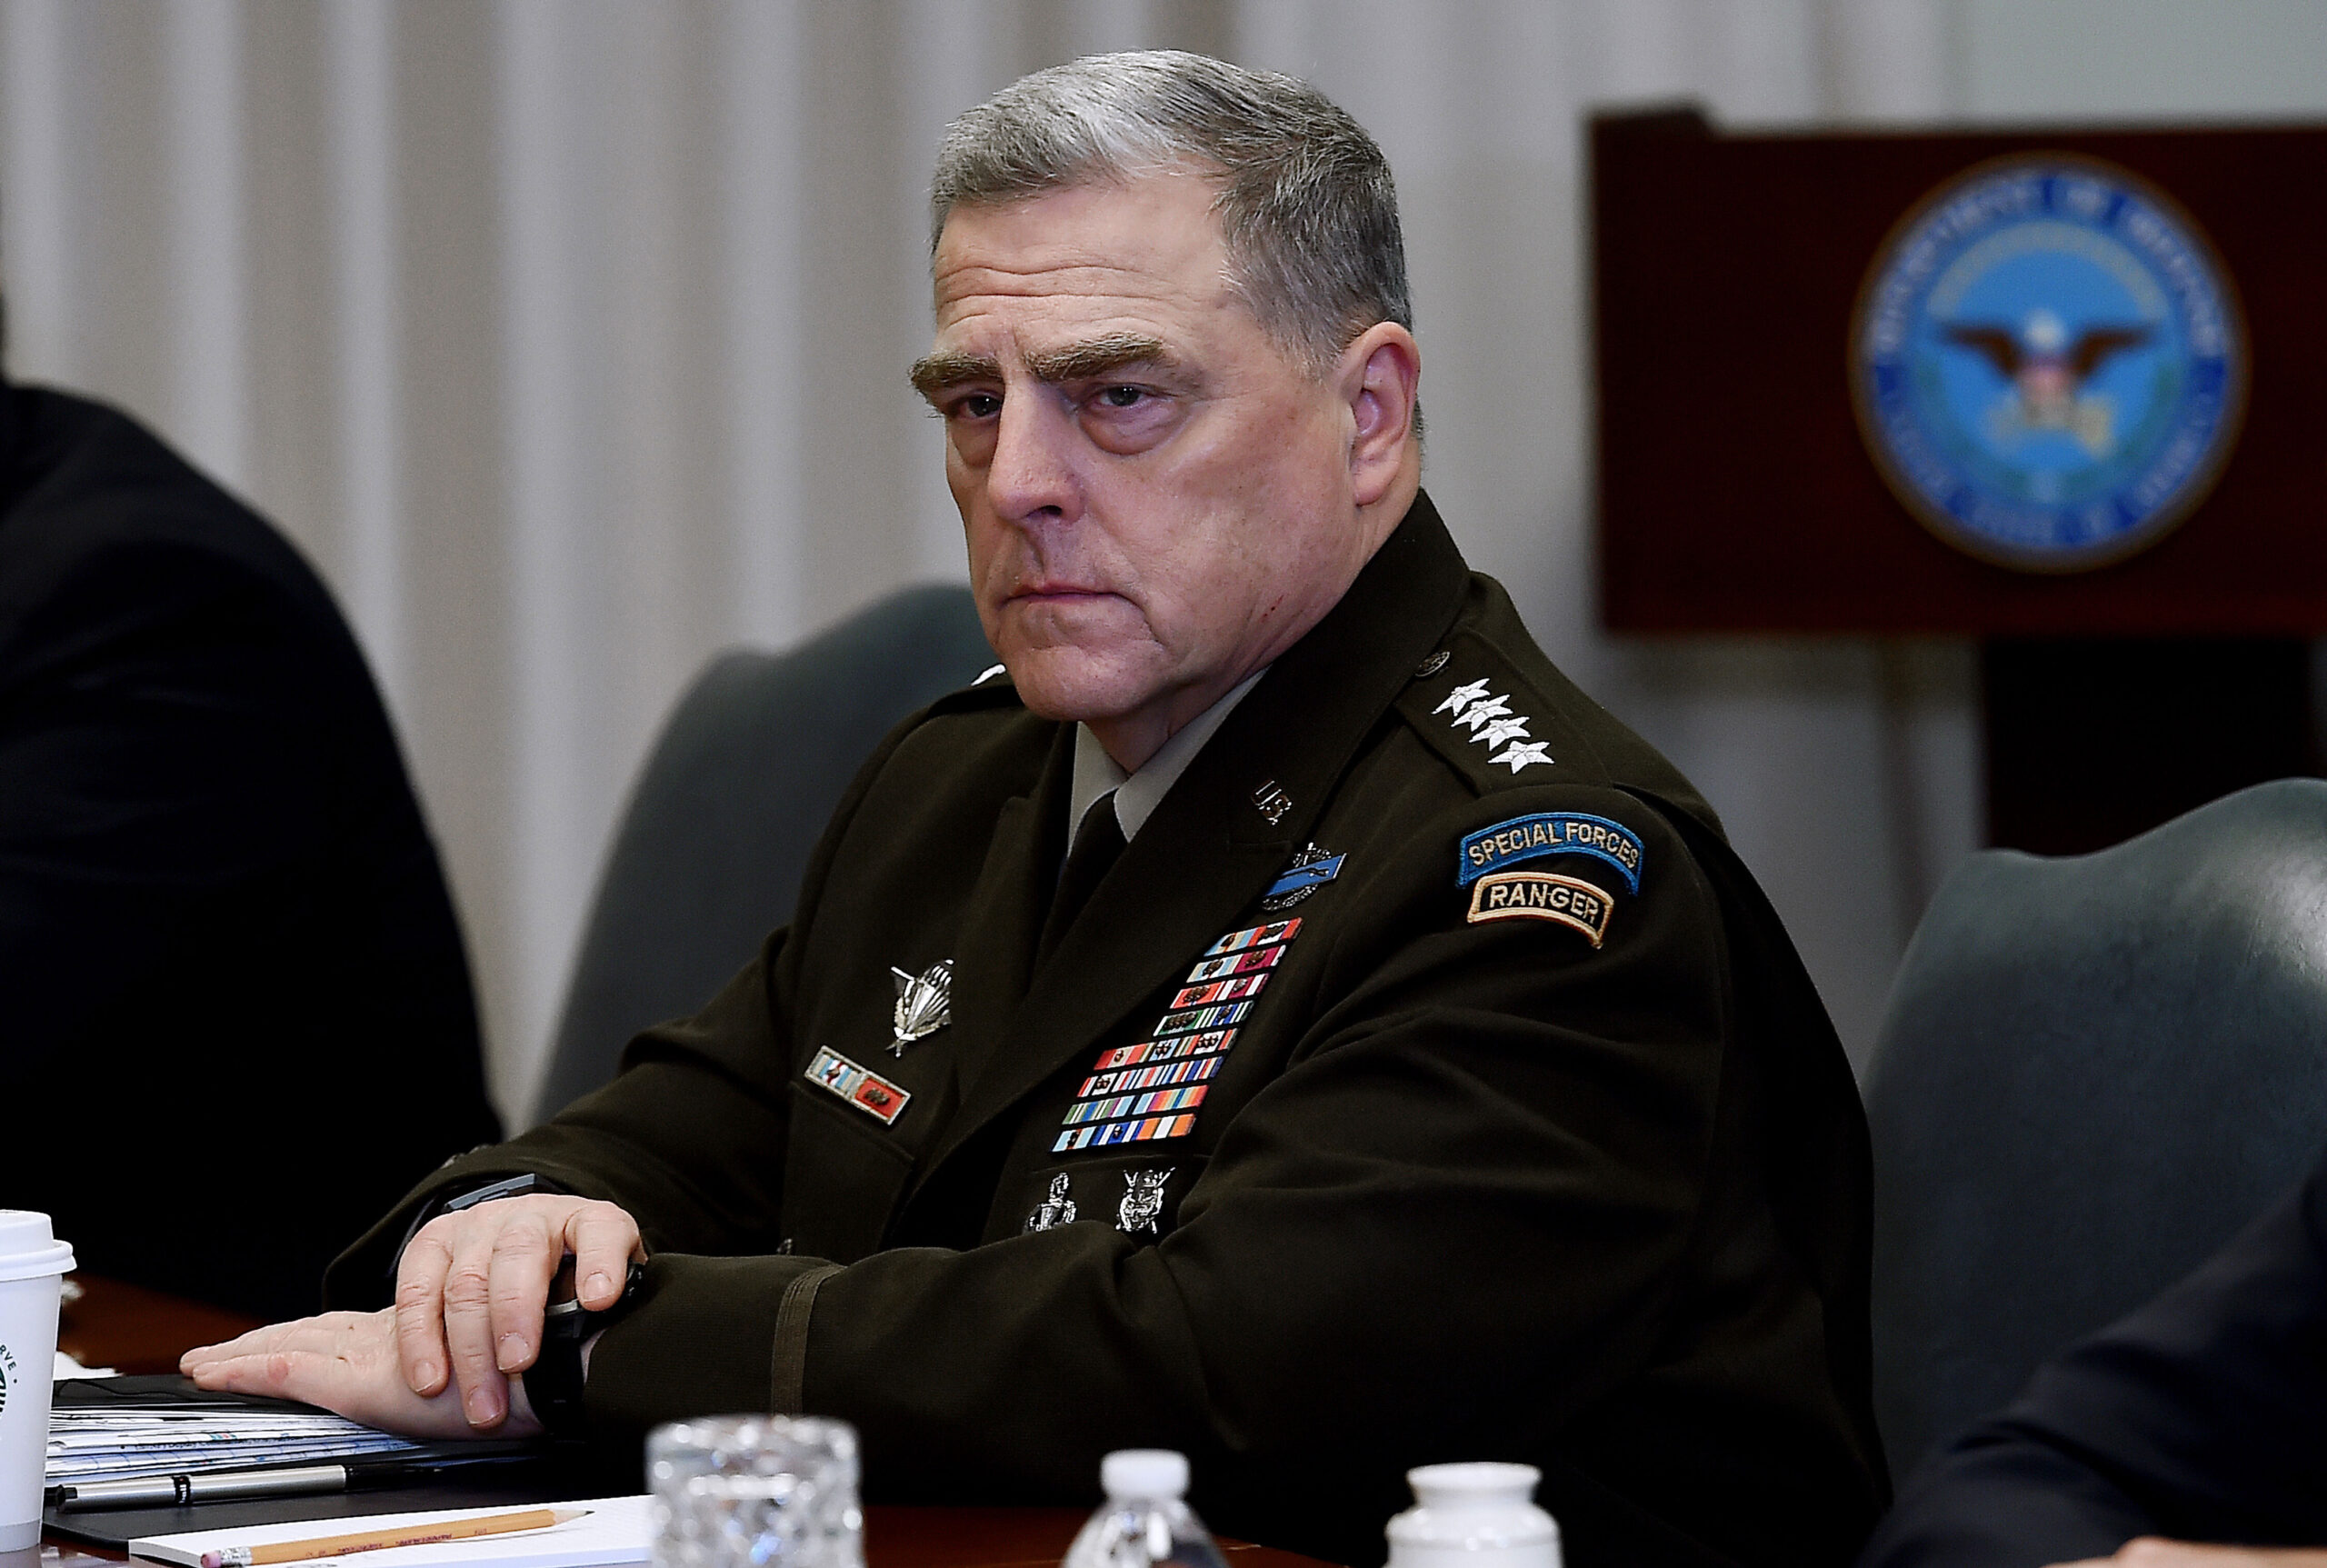 <i>Olivier Douliery/AFP/Getty Images</i><br/>Chairman of the Joint Chiefs of Staff Gen. Mark Milley met his Russian counterpart for about six hours on Sept. 22 in a